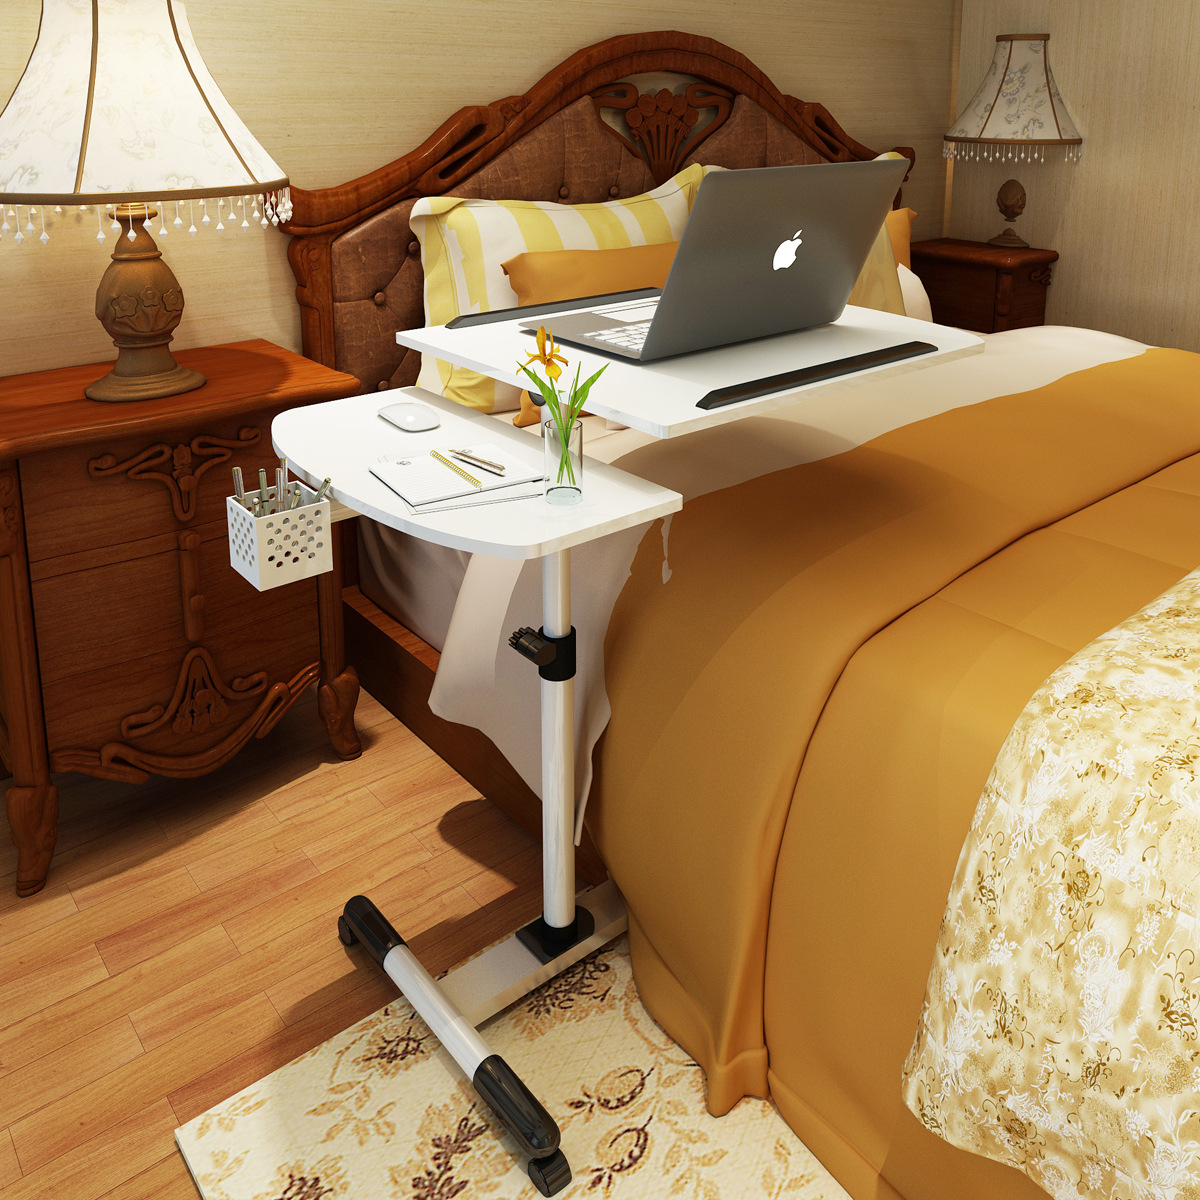 Superb Us 65 87 20 Off Height Adjustable Rolling Table Desk Laptop Notebook Stand Tiltable Tabletop Desk Sofa Bed Side Table Hospital Table Stand In Laptop Unemploymentrelief Wooden Chair Designs For Living Room Unemploymentrelieforg